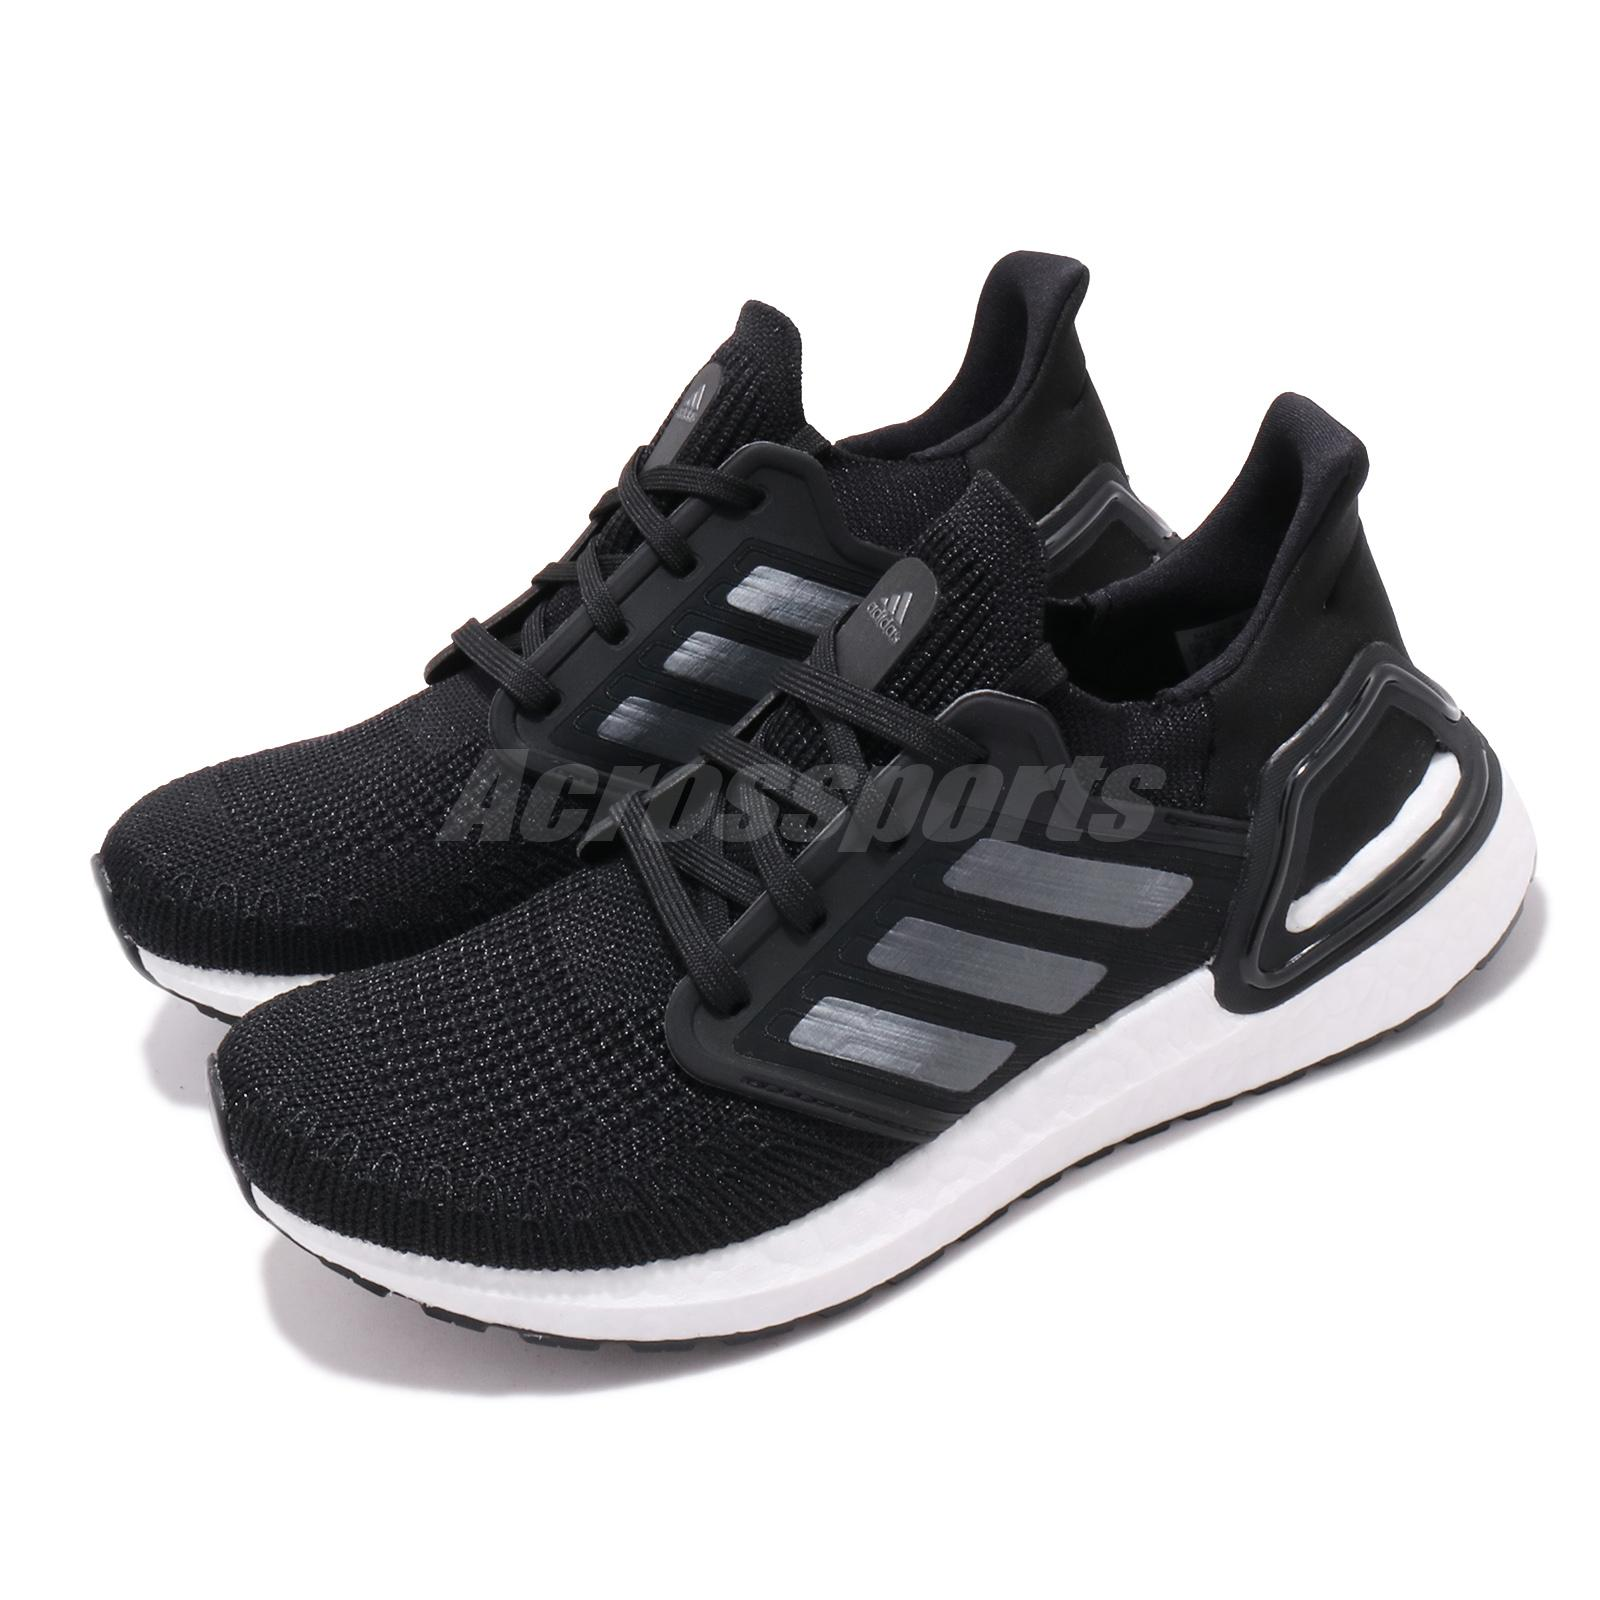 adidas ultra boost women black and white